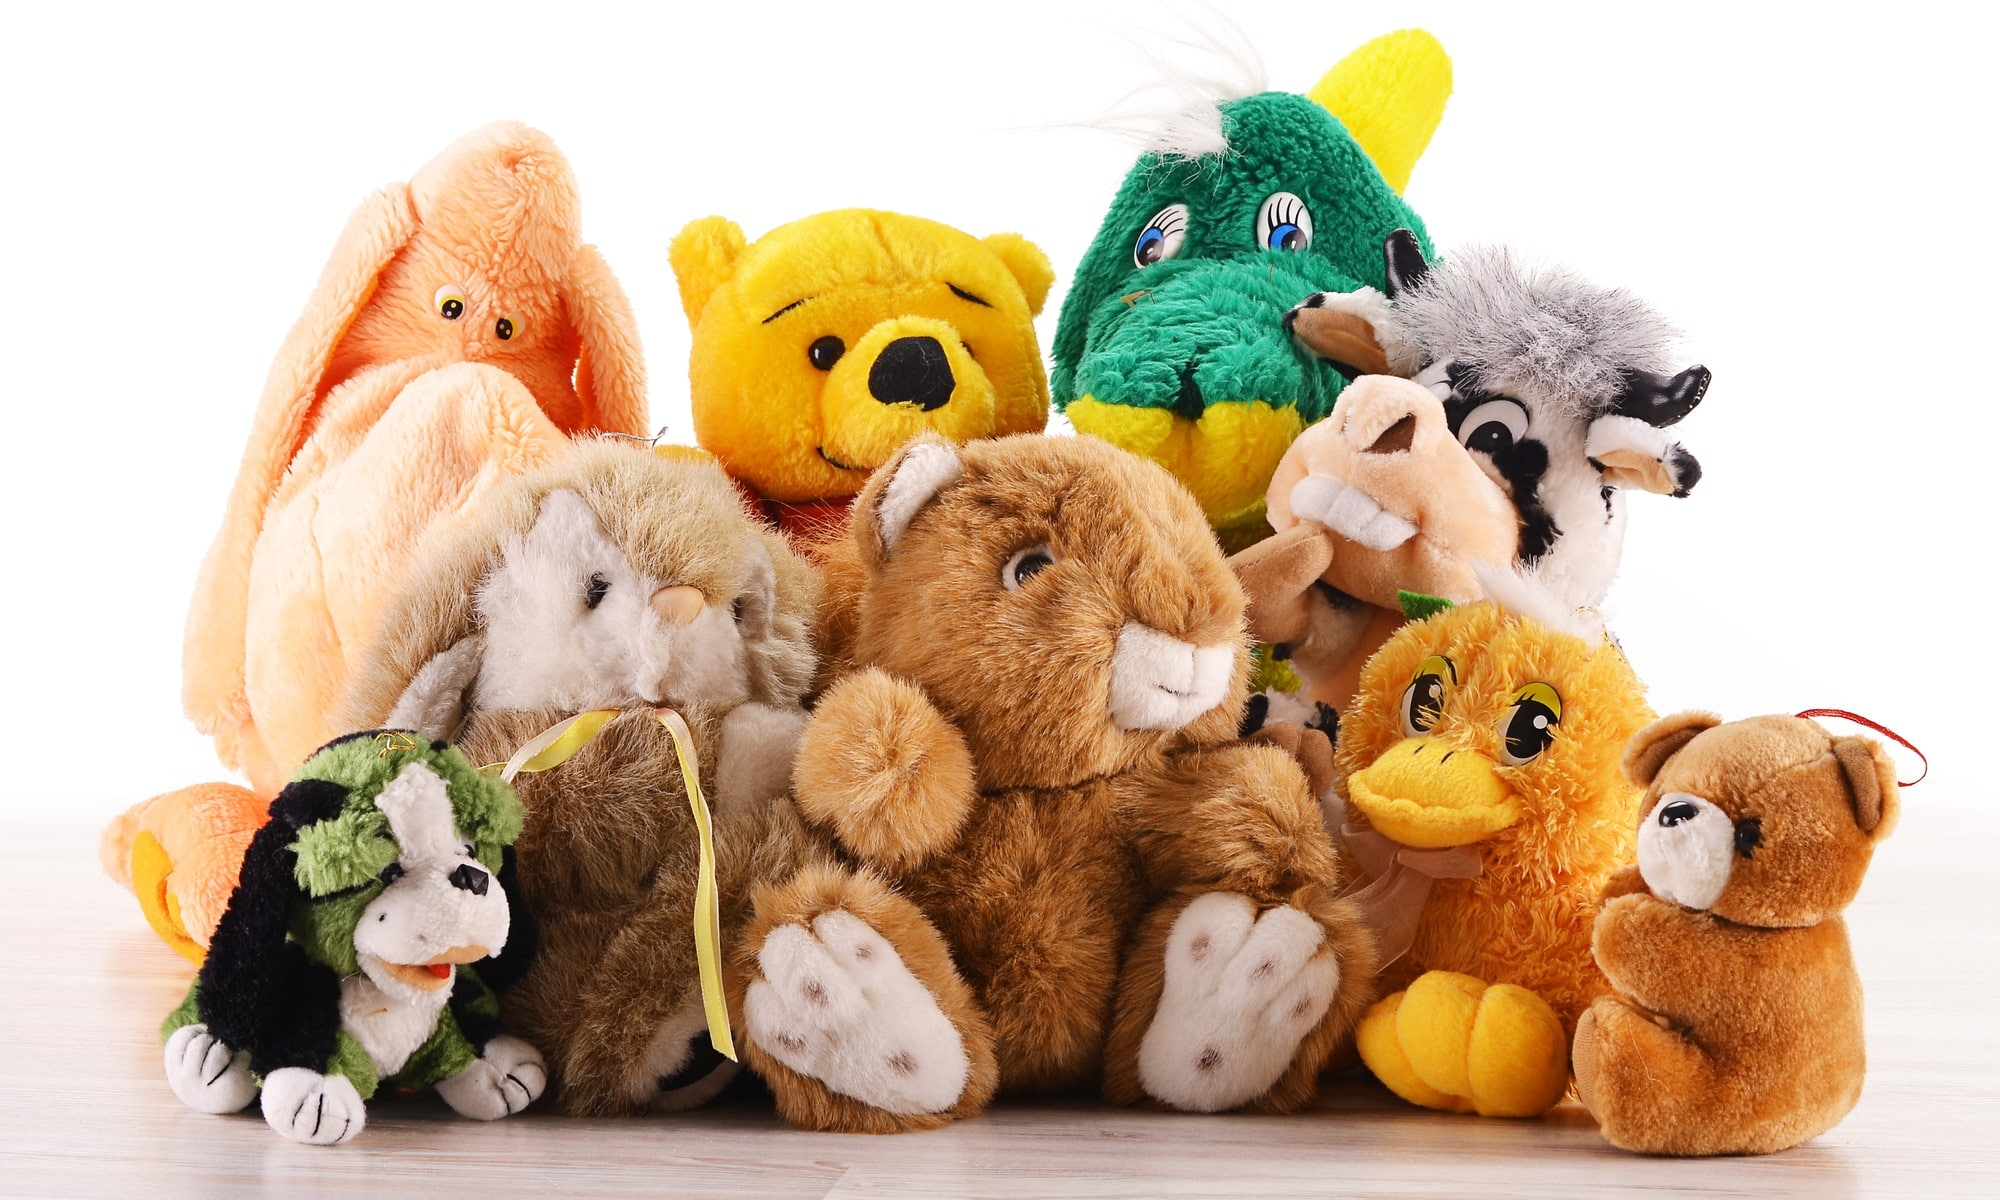 Teddy Bears and Toys from Babywear Brands